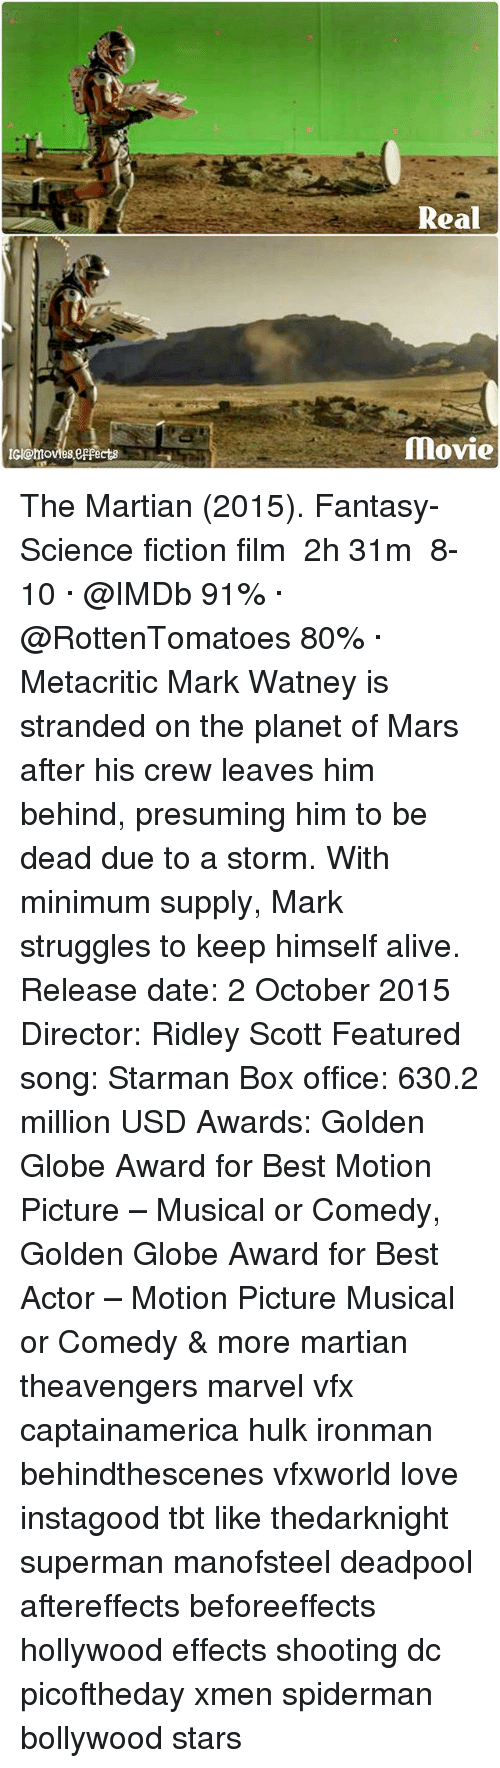 xmen: Real  movie  c @moves eepacts The Martian (2015). Fantasy-Science fiction film ‧ 2h 31m  8-10 · @IMDb 91% · @RottenTomatoes 80% · Metacritic Mark Watney is stranded on the planet of Mars after his crew leaves him behind, presuming him to be dead due to a storm. With minimum supply, Mark struggles to keep himself alive. Release date: 2 October 2015 Director: Ridley Scott Featured song: Starman Box office: 630.2 million USD Awards: Golden Globe Award for Best Motion Picture – Musical or Comedy, Golden Globe Award for Best Actor – Motion Picture Musical or Comedy & more martian theavengers marvel vfx captainamerica hulk ironman behindthescenes vfxworld love instagood tbt like thedarknight superman manofsteel deadpool aftereffects beforeeffects hollywood effects shooting dc picoftheday xmen spiderman bollywood stars